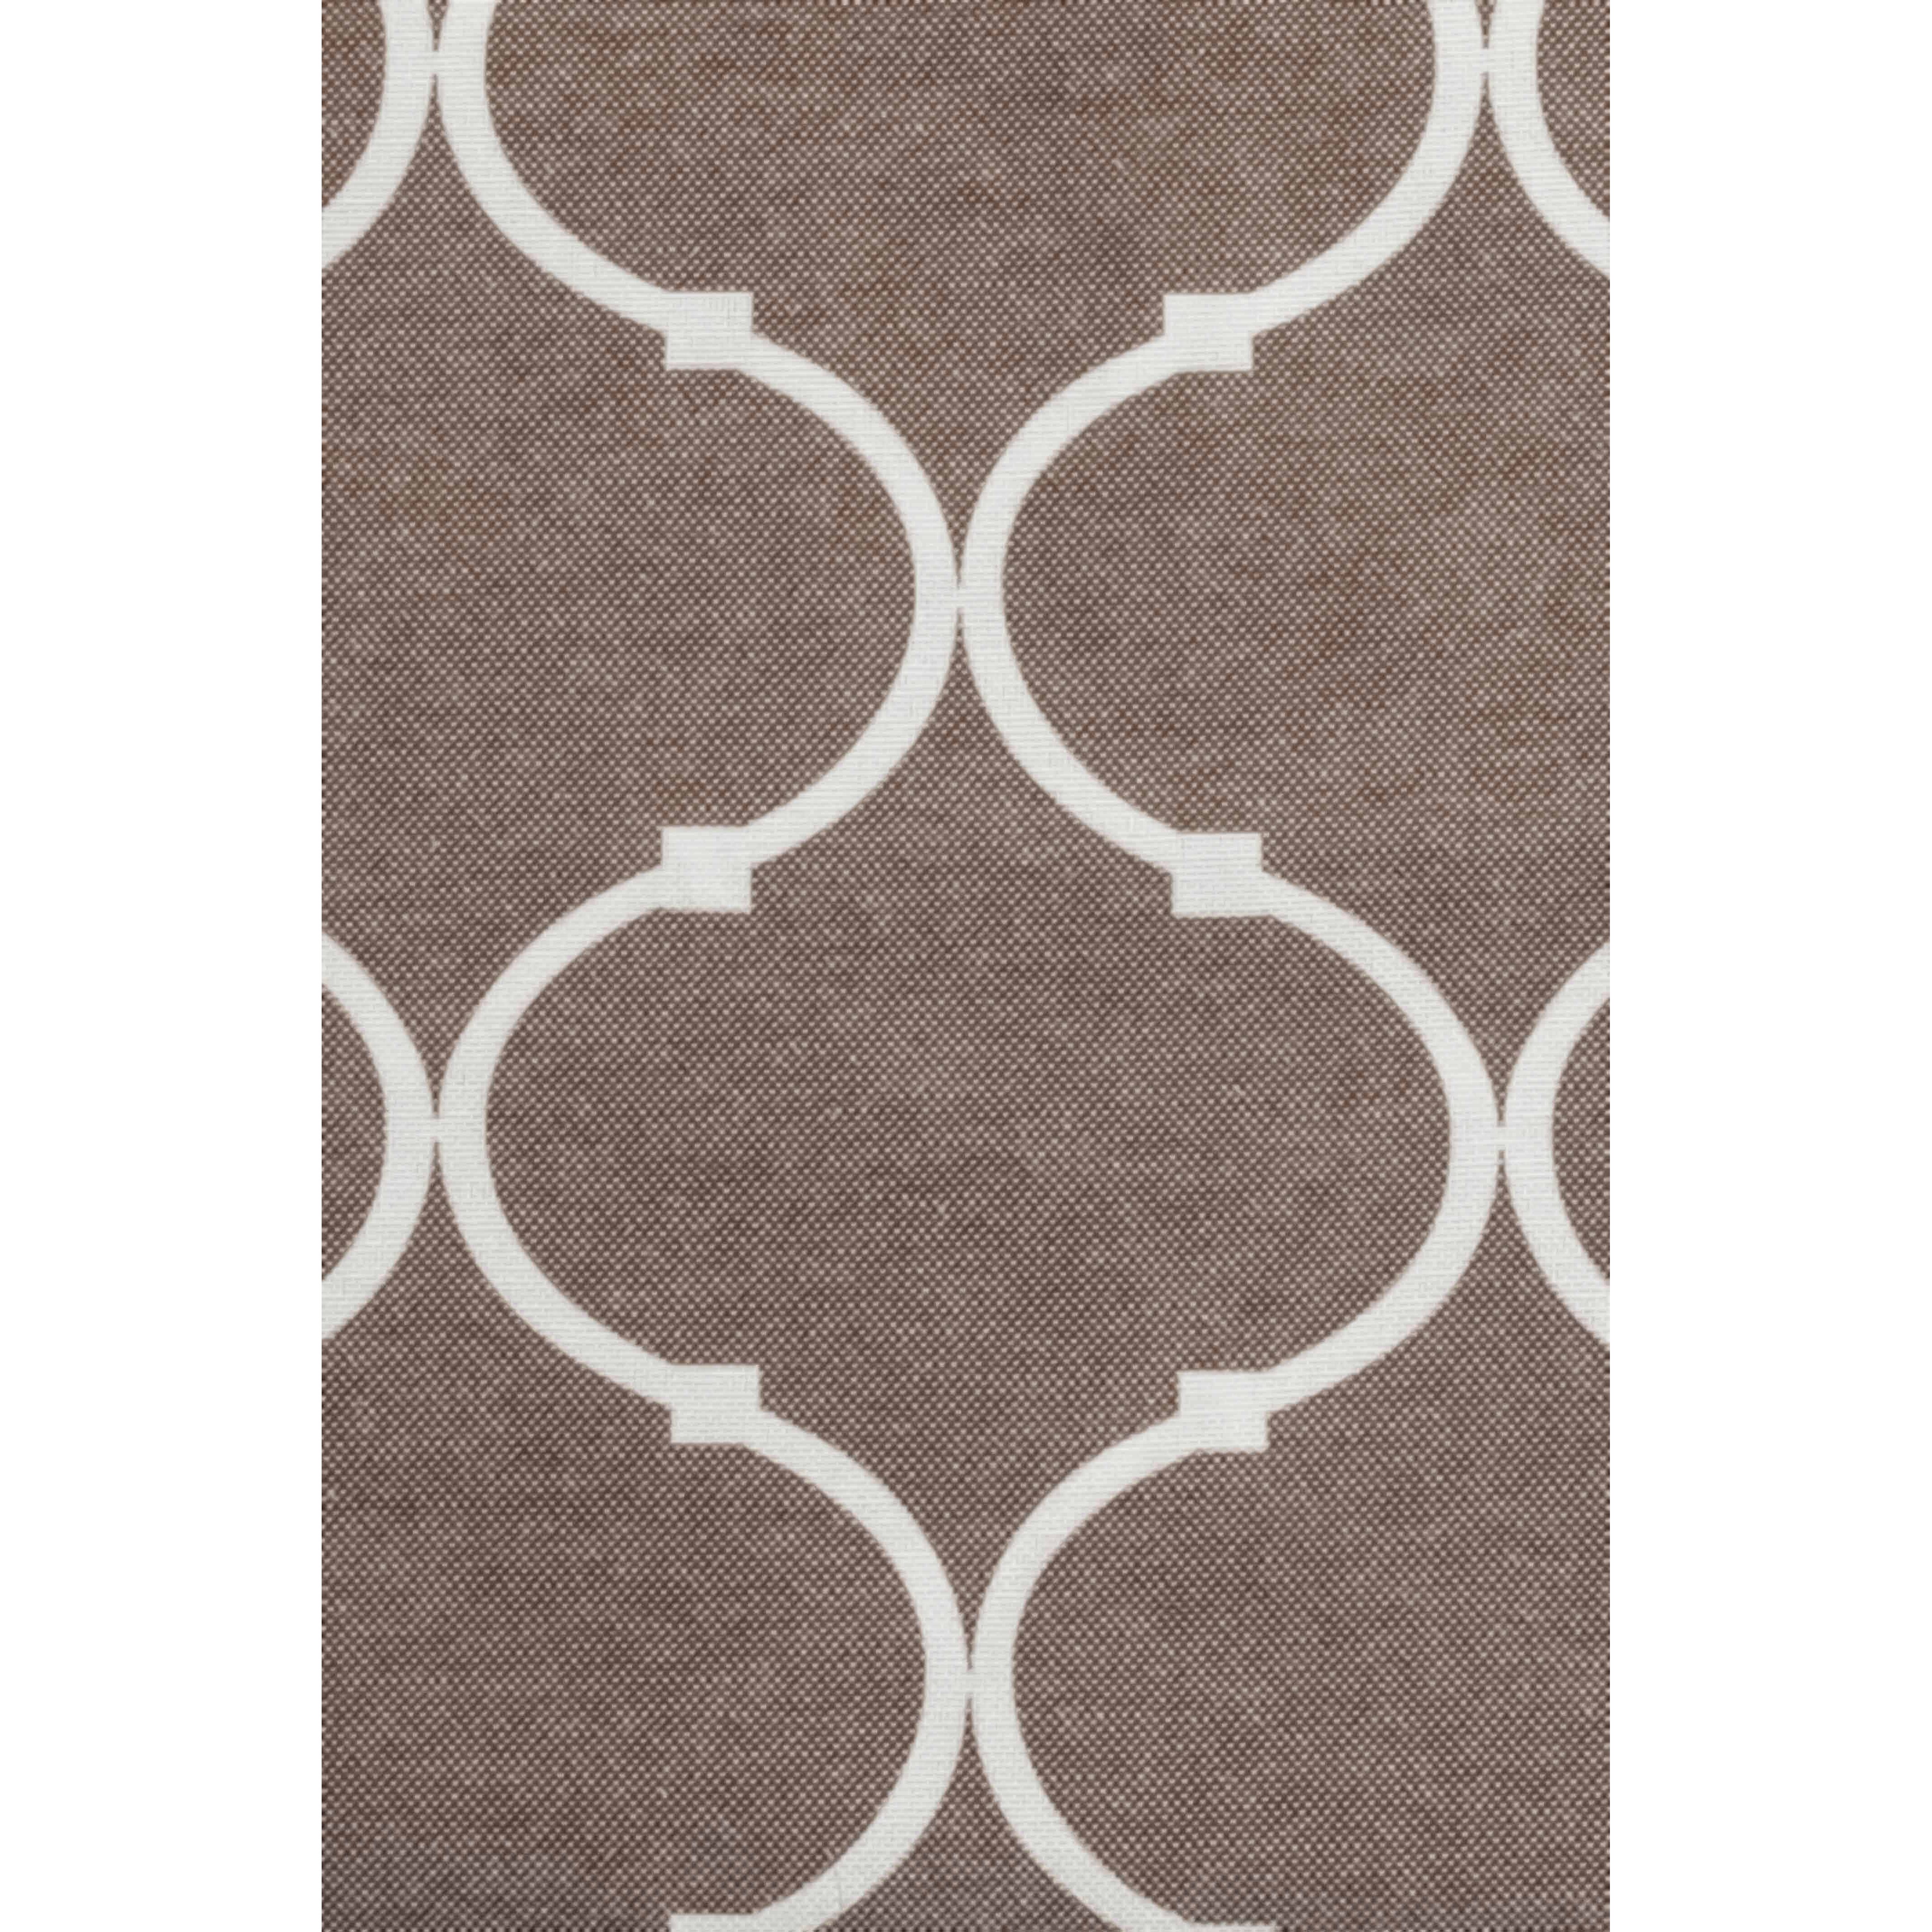 Moroccan tile pattern curtains - Crover Moroccan Trellis Curtain Panels